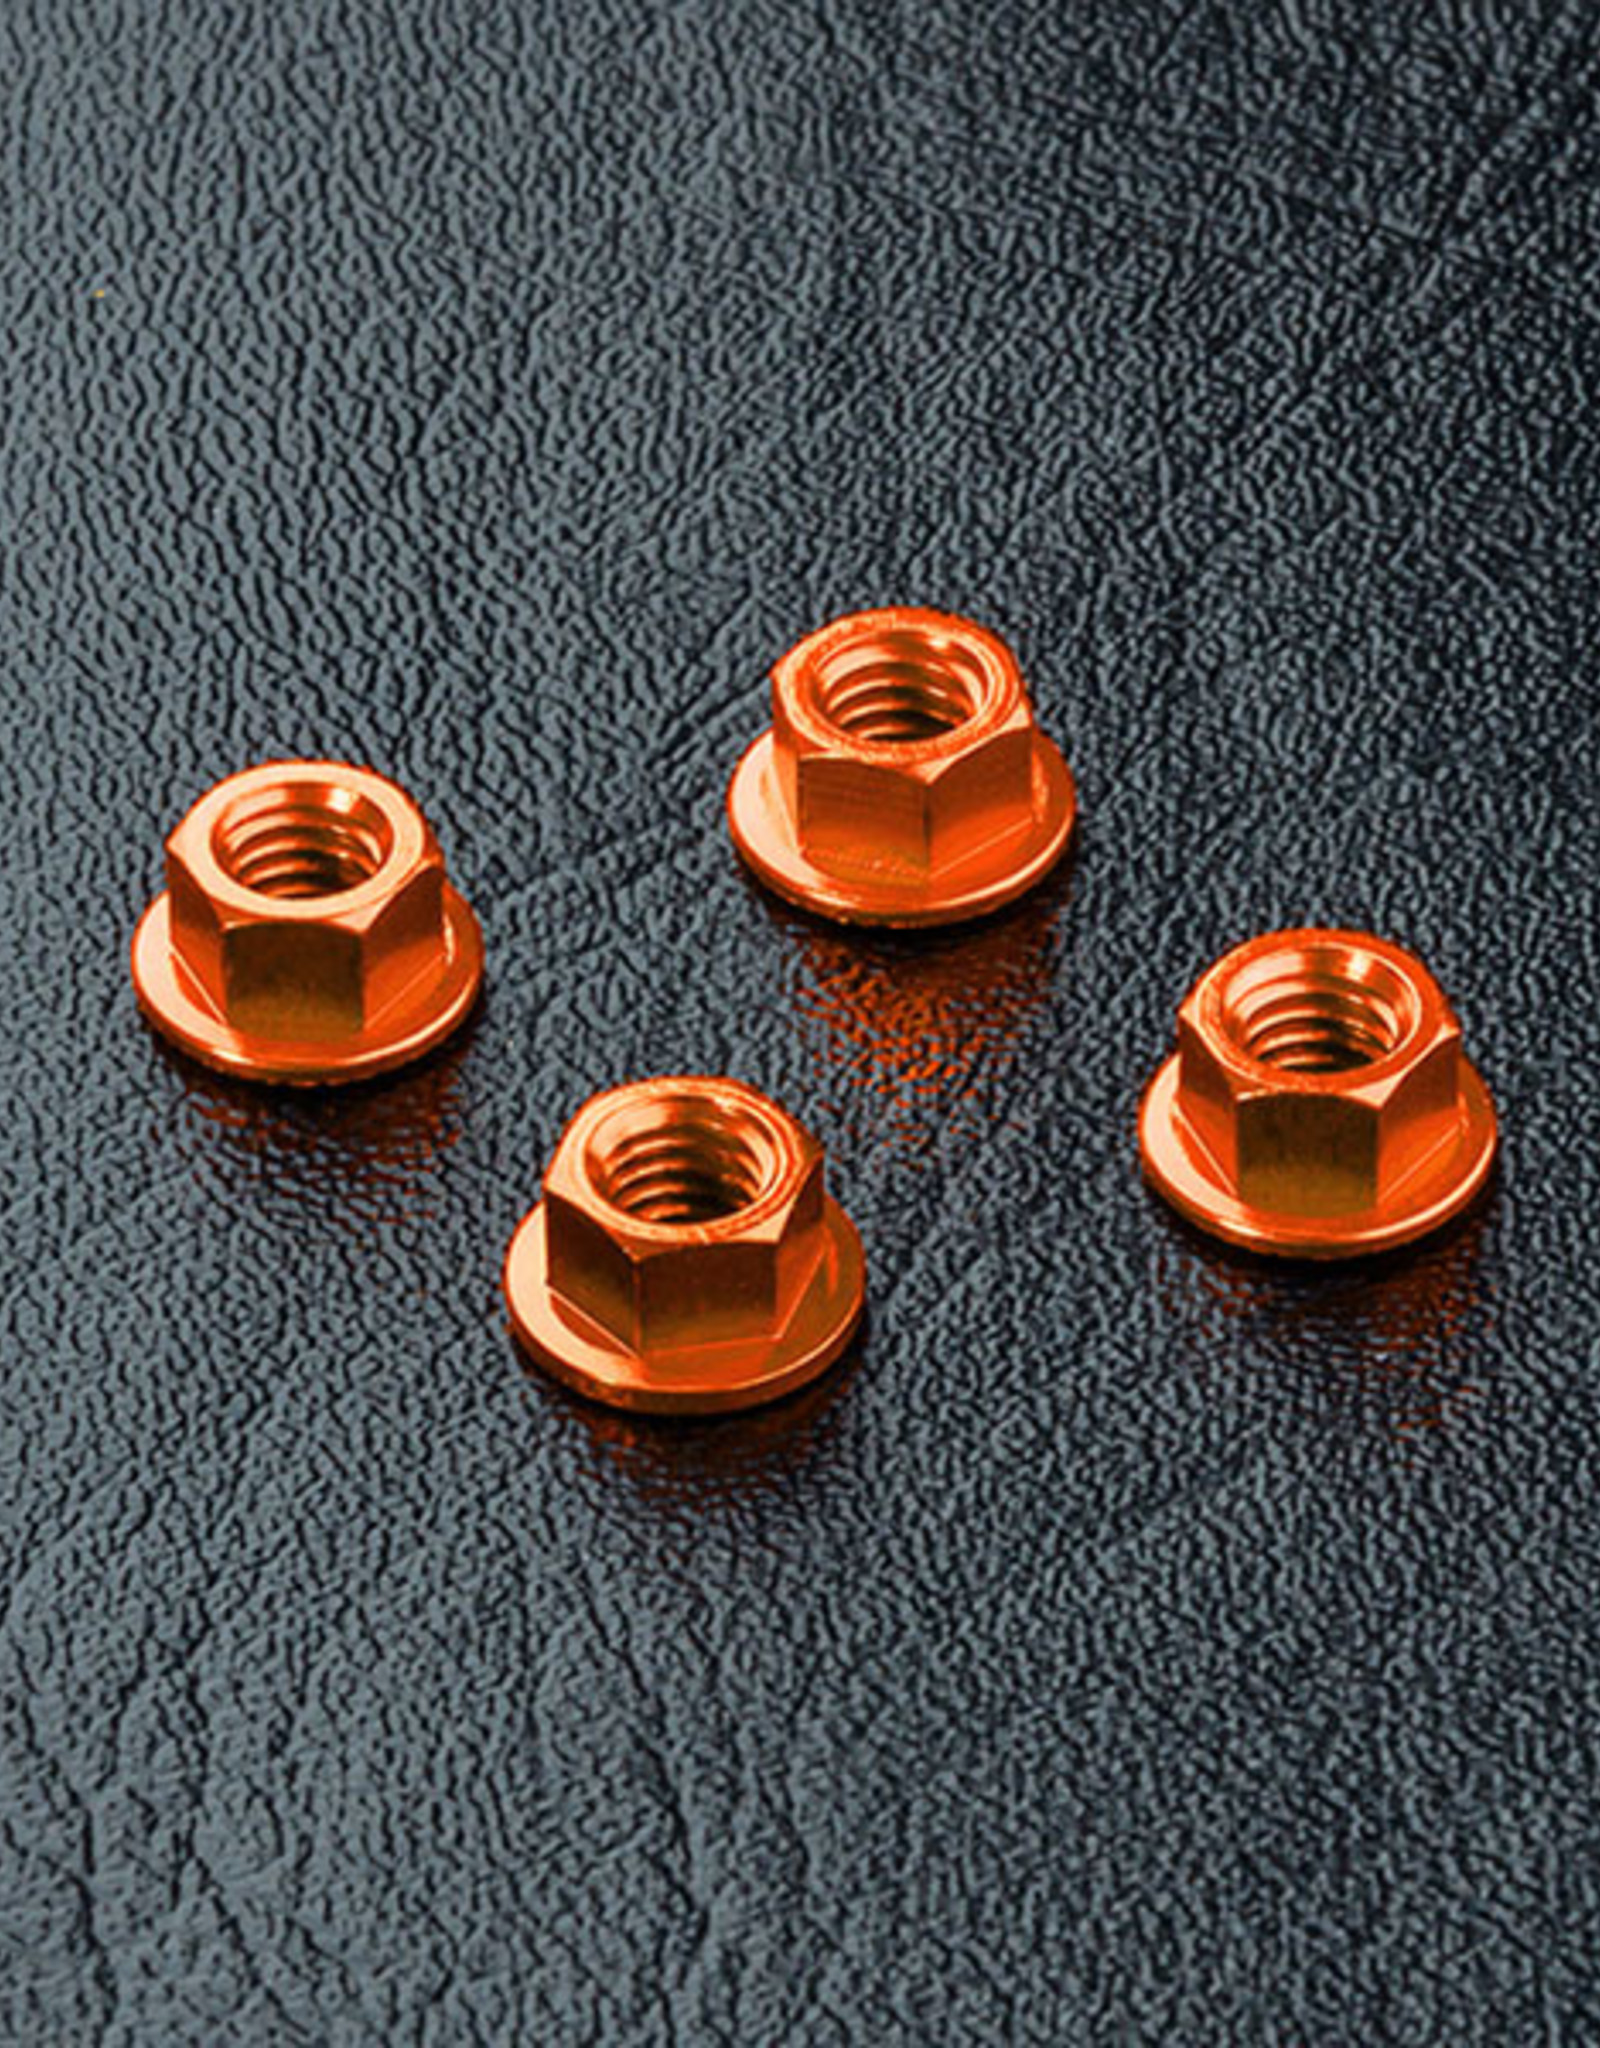 MST MXSPD820001O Alum. wheel nut (orange) (4) by MST820001O